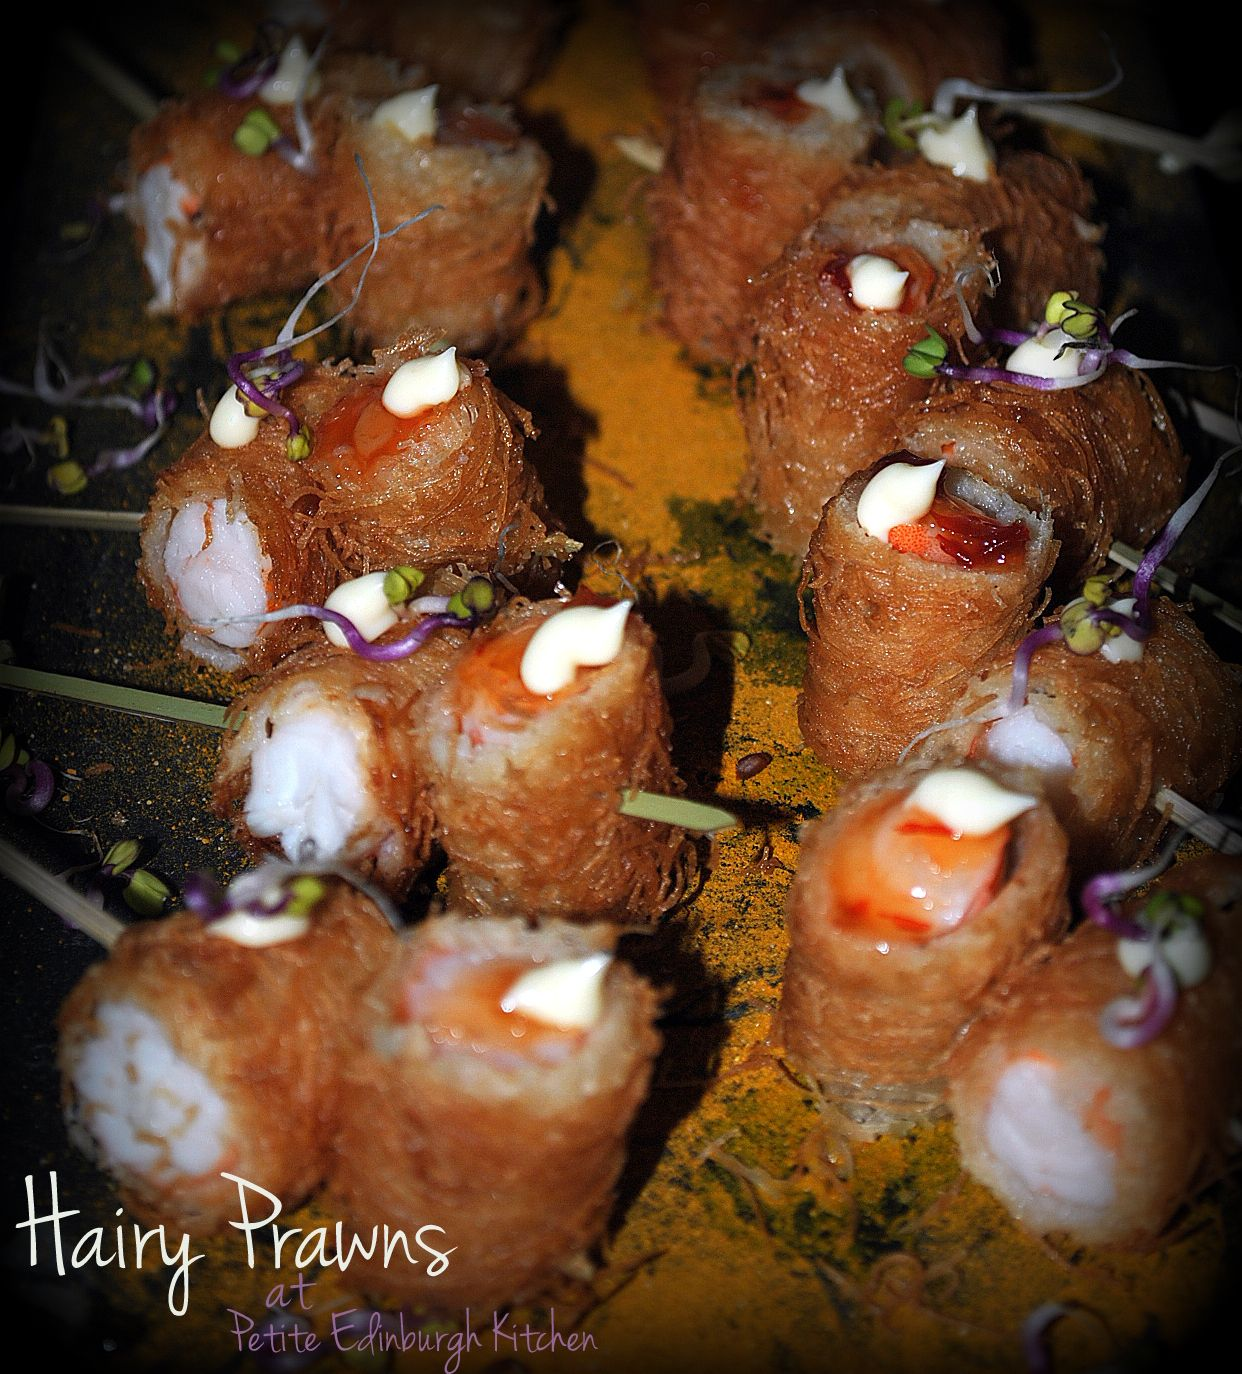 Hairy prawns hors d 39 oeuvres for Canape hors d oeuvres difference